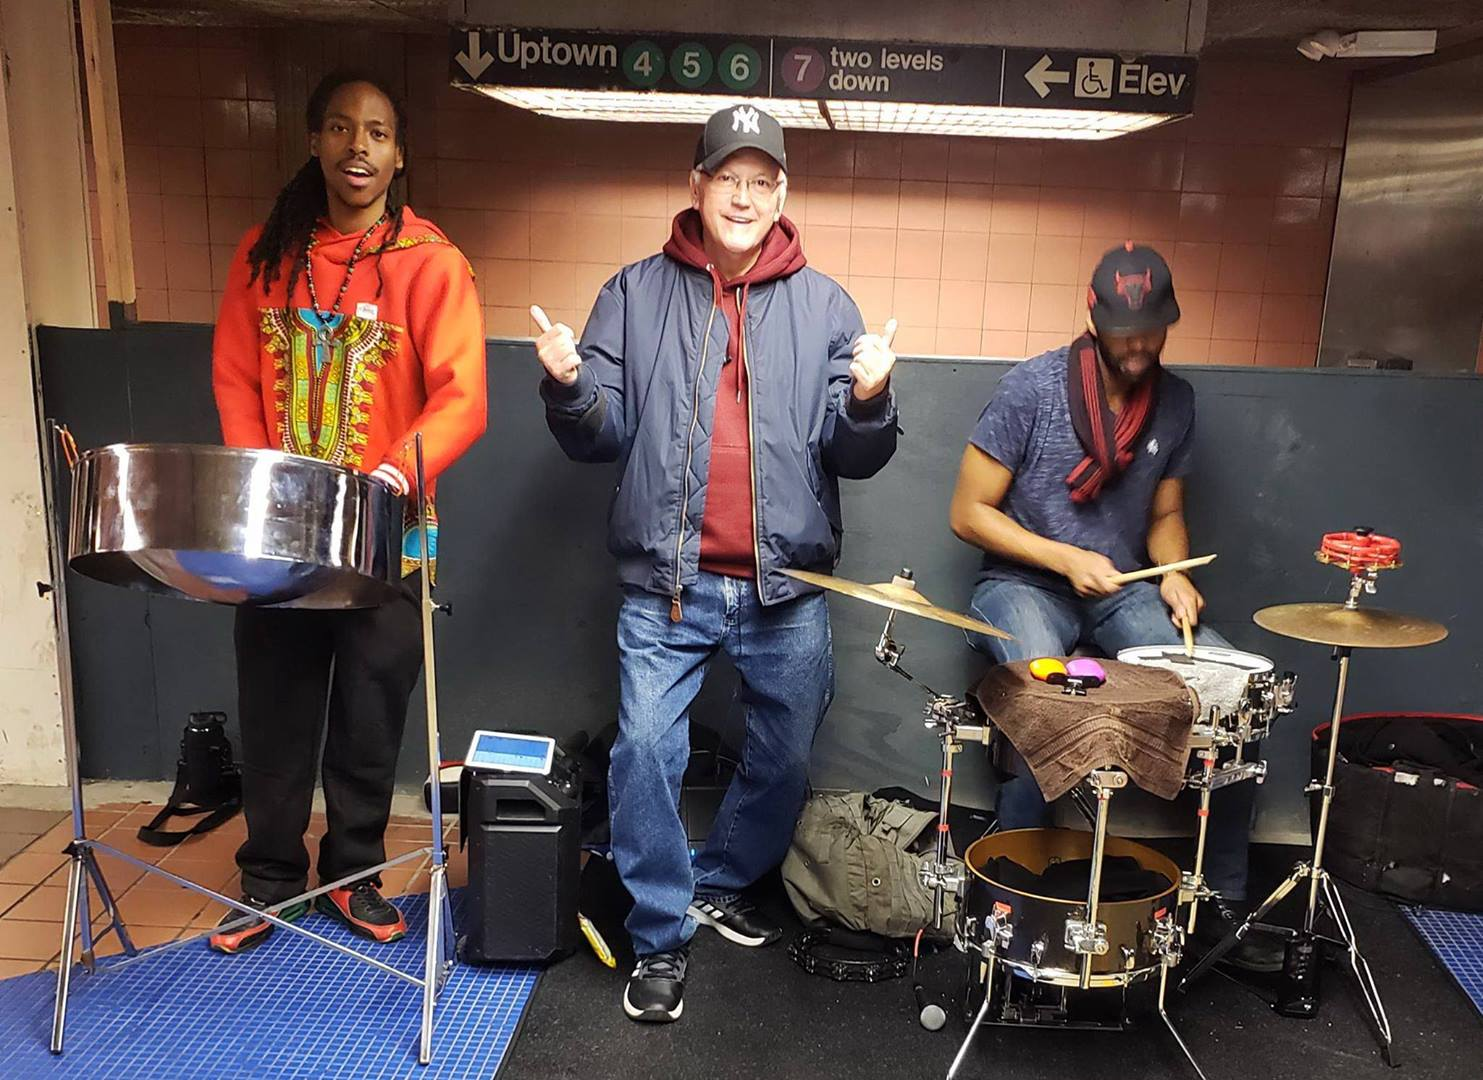 LIVE SUBWAY MUSIC